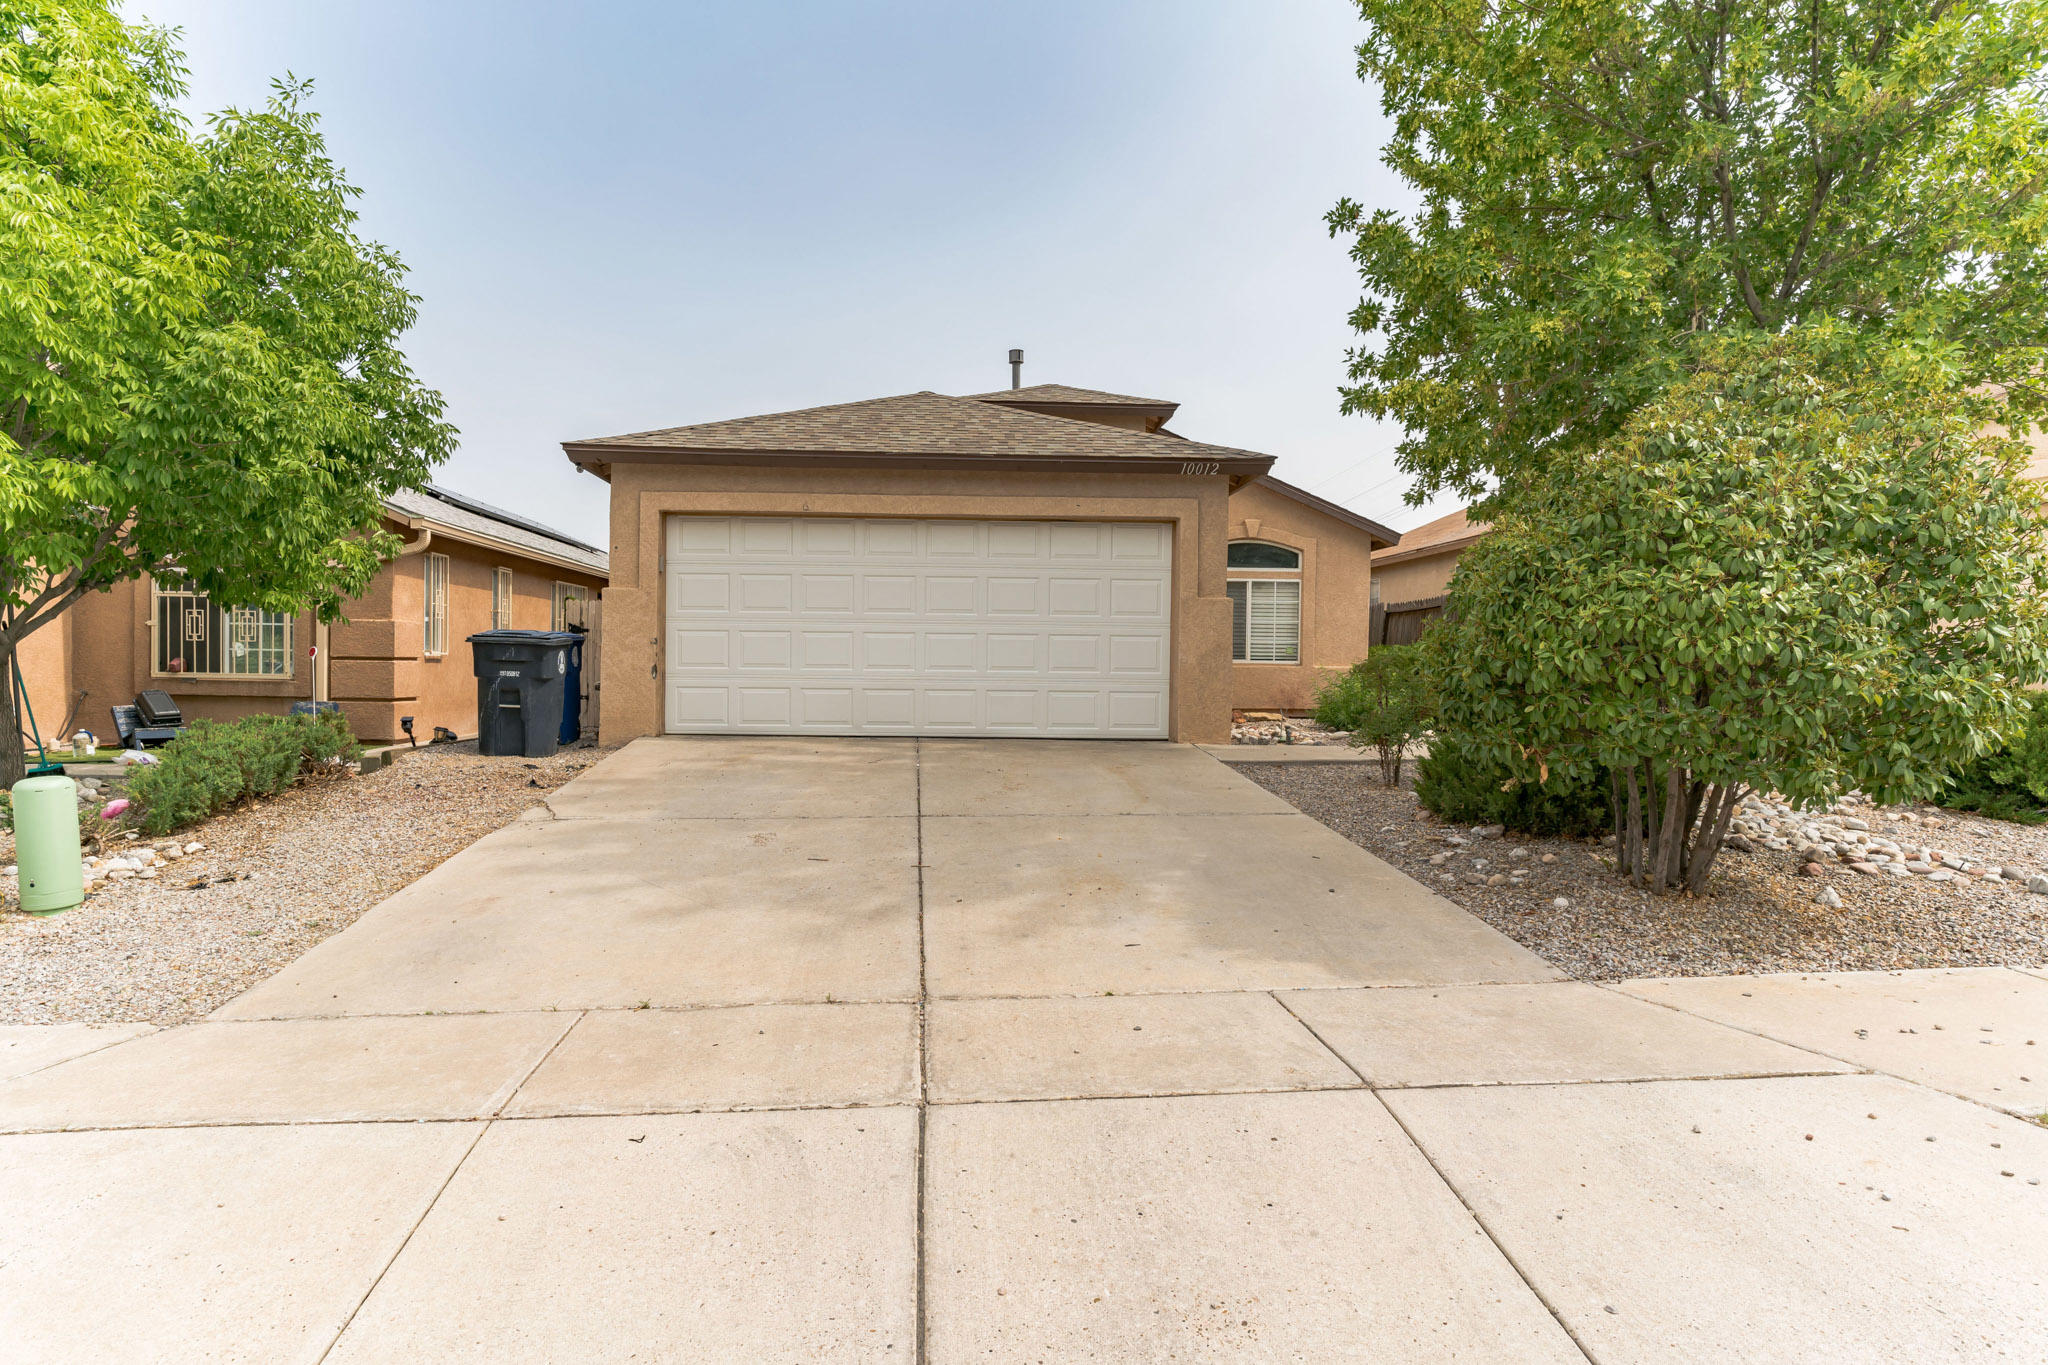 Move in ready house with new roof.  Features a spacious main suite with two closets, two vanities separate shower and bath.  Two living areas.  Backyard has little maintenance.